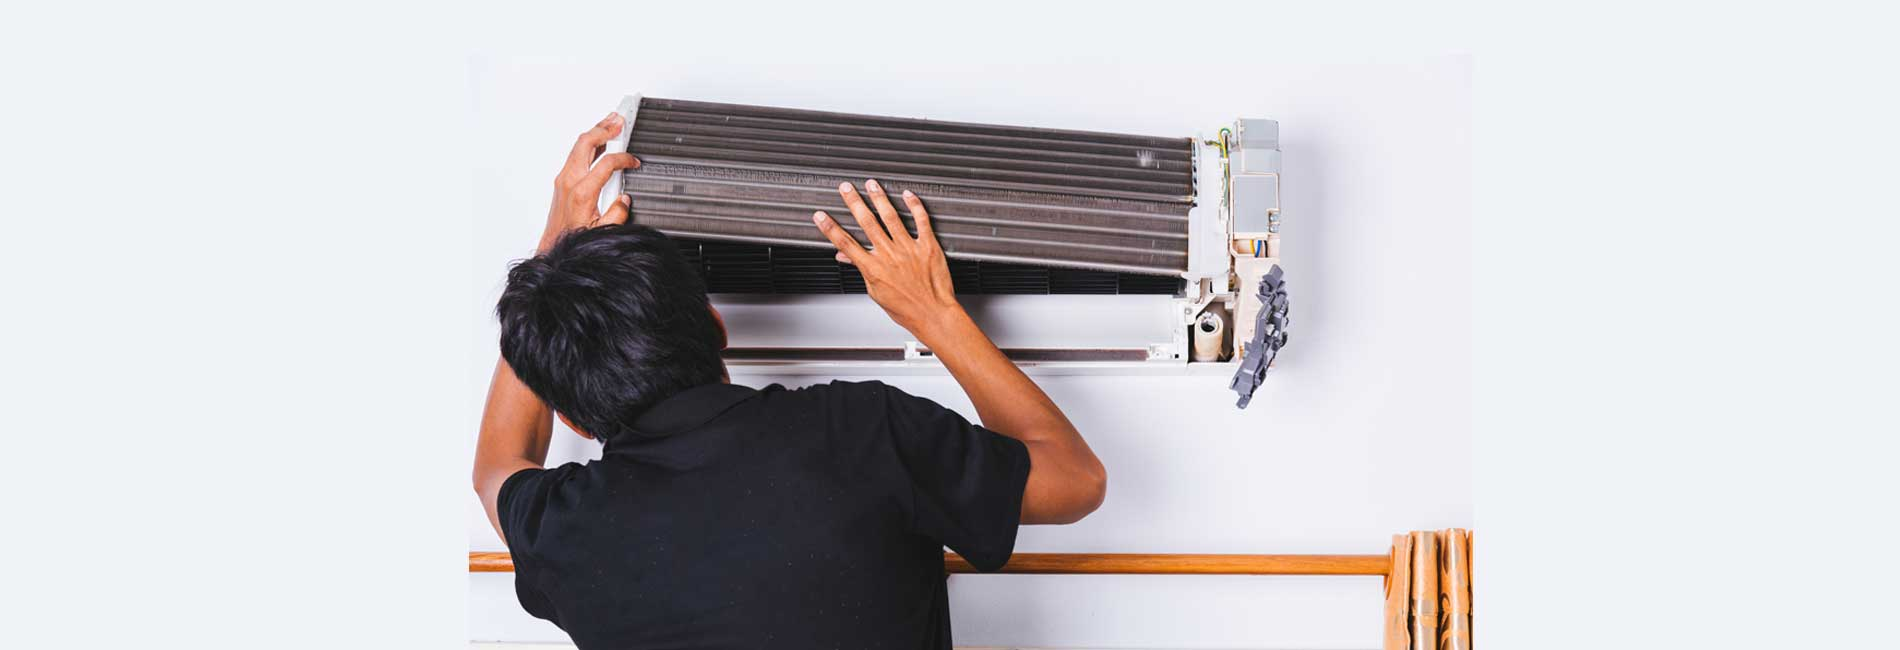 Air Conditioner Service in Choolaimedu